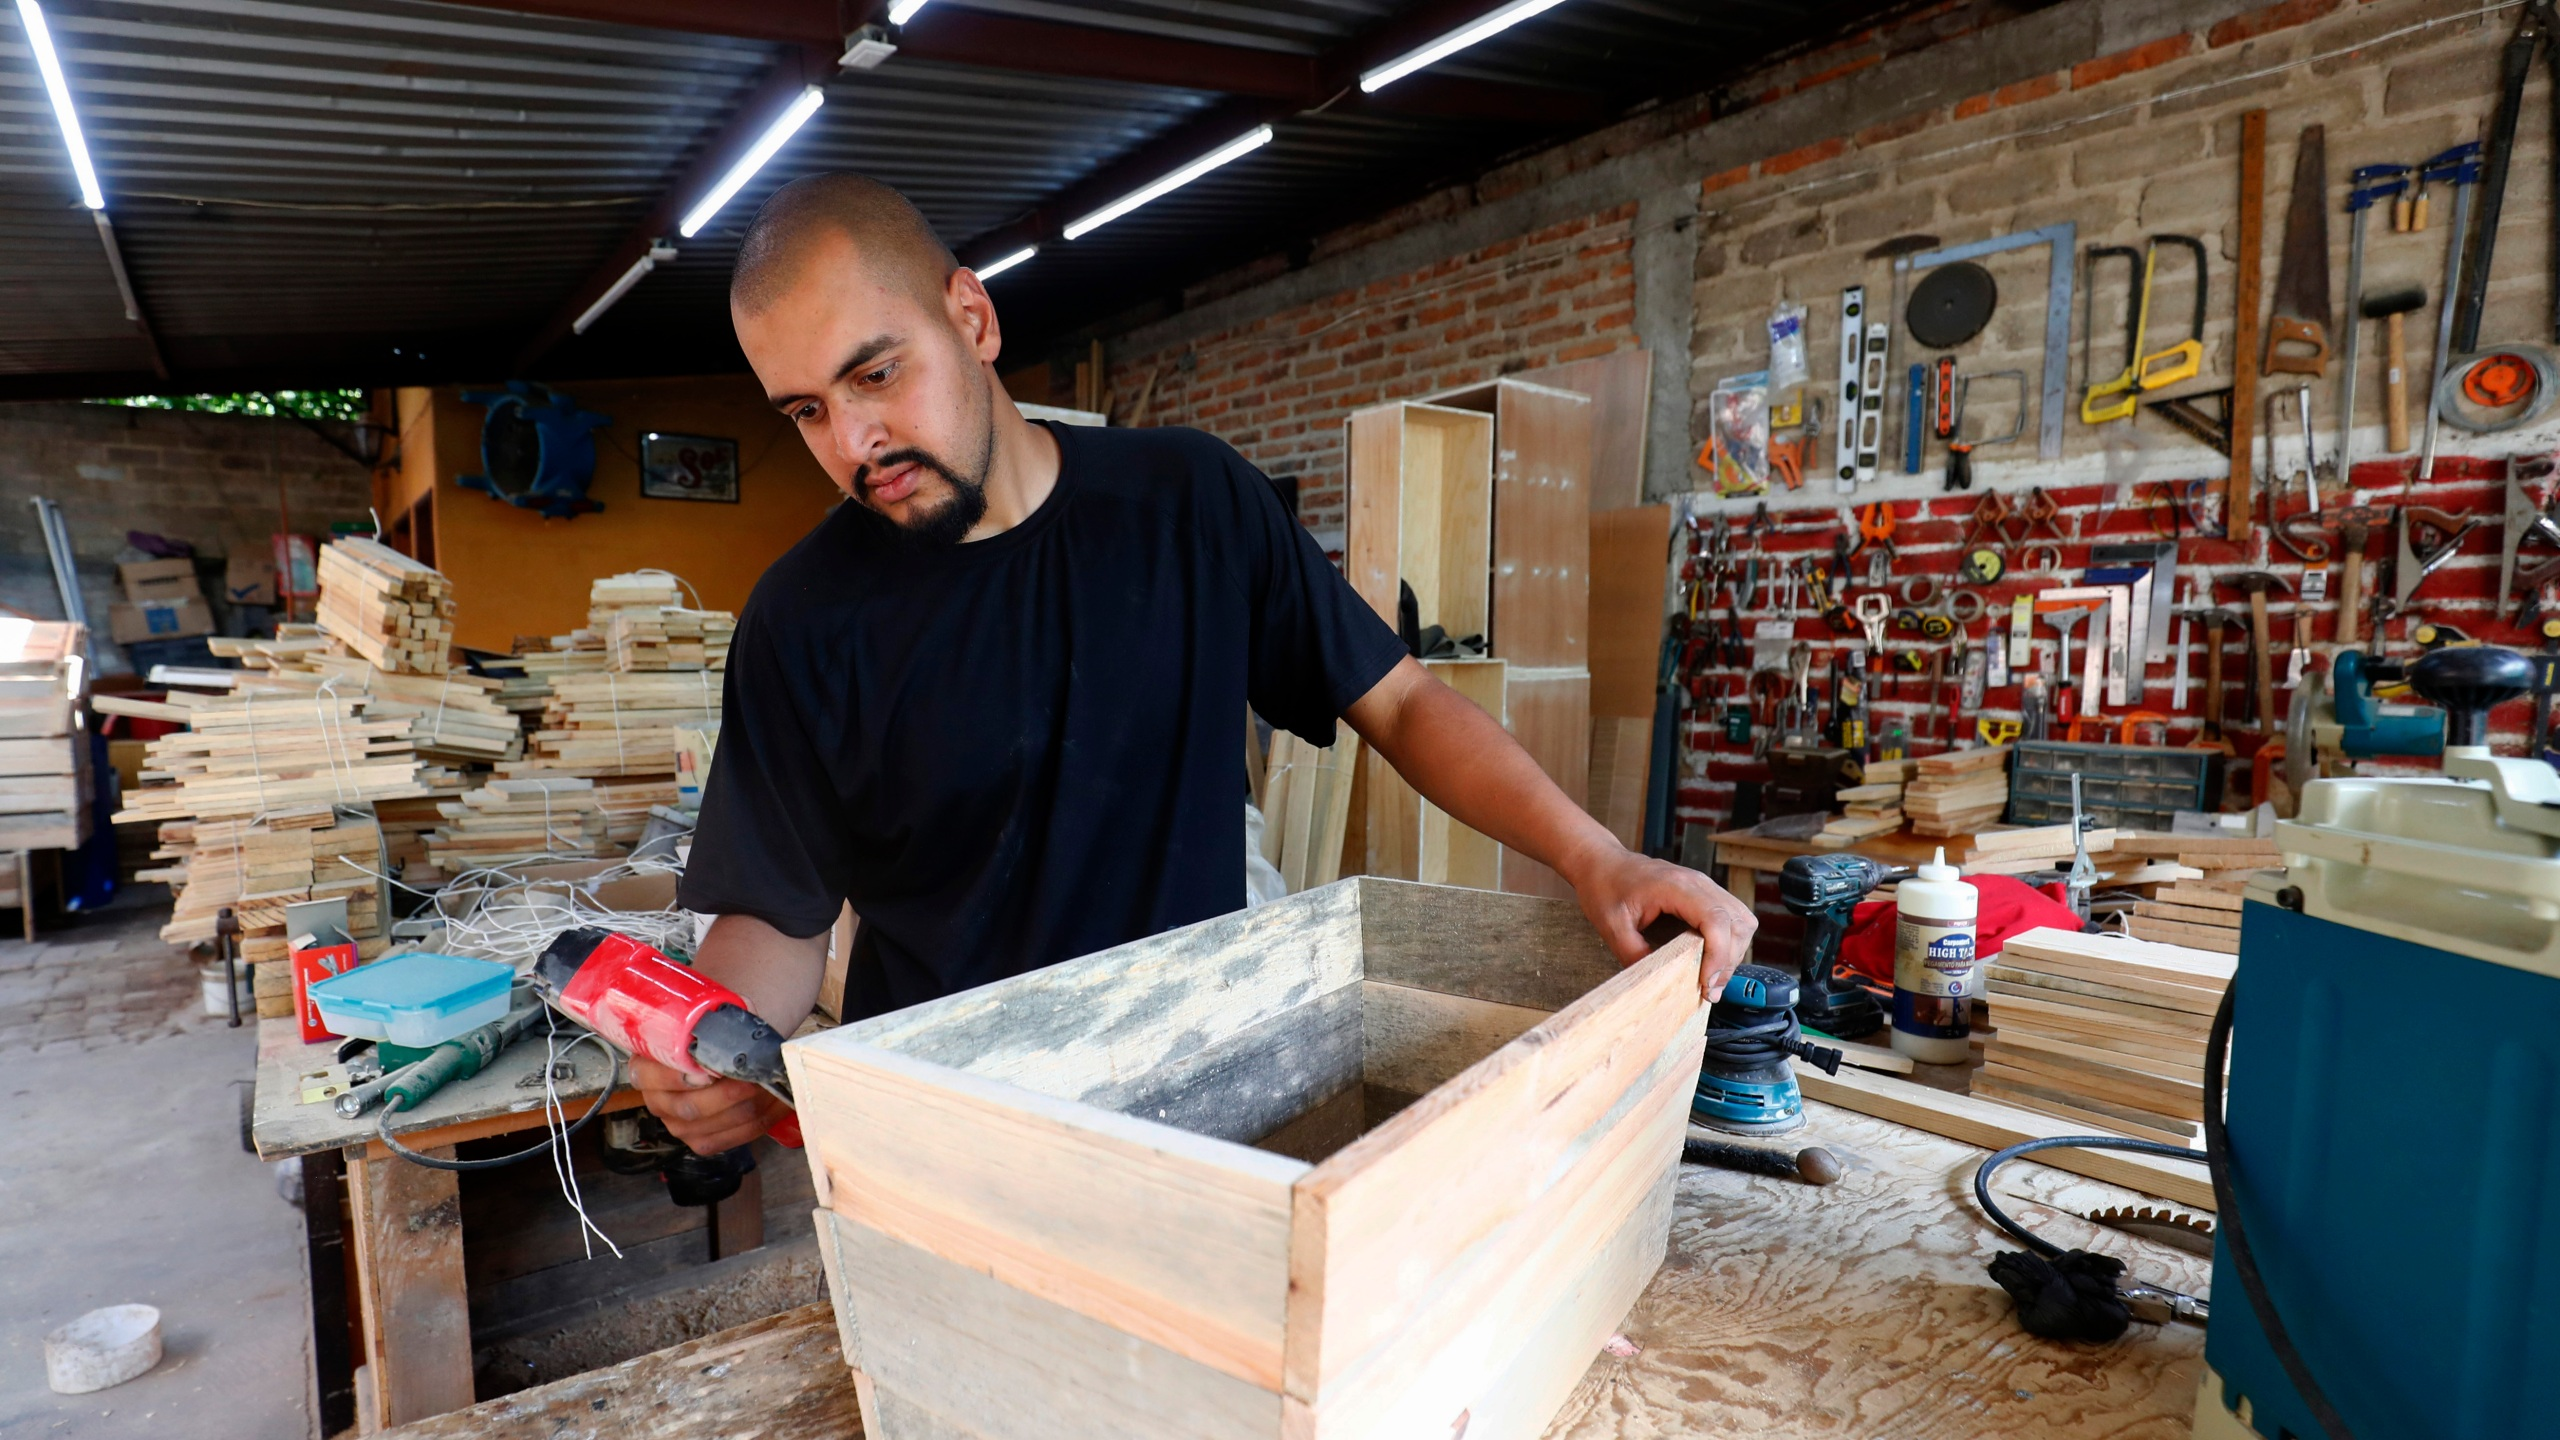 Jesus Lopez works in his family's carpentry workshop in Zapopan, Jalisco state, Thursday, May 13, 2021. Lopez arrived to the U.S. when he was 9 on a tourist visa that later expired. He became a Deferred Action for Childhood Arrivals, DACA, recipient in 2012, which allowed him to work. In 2015, he said he did not complete his DACA renewal because he couldn't afford it. (AP Photo/Refugio Ruiz)